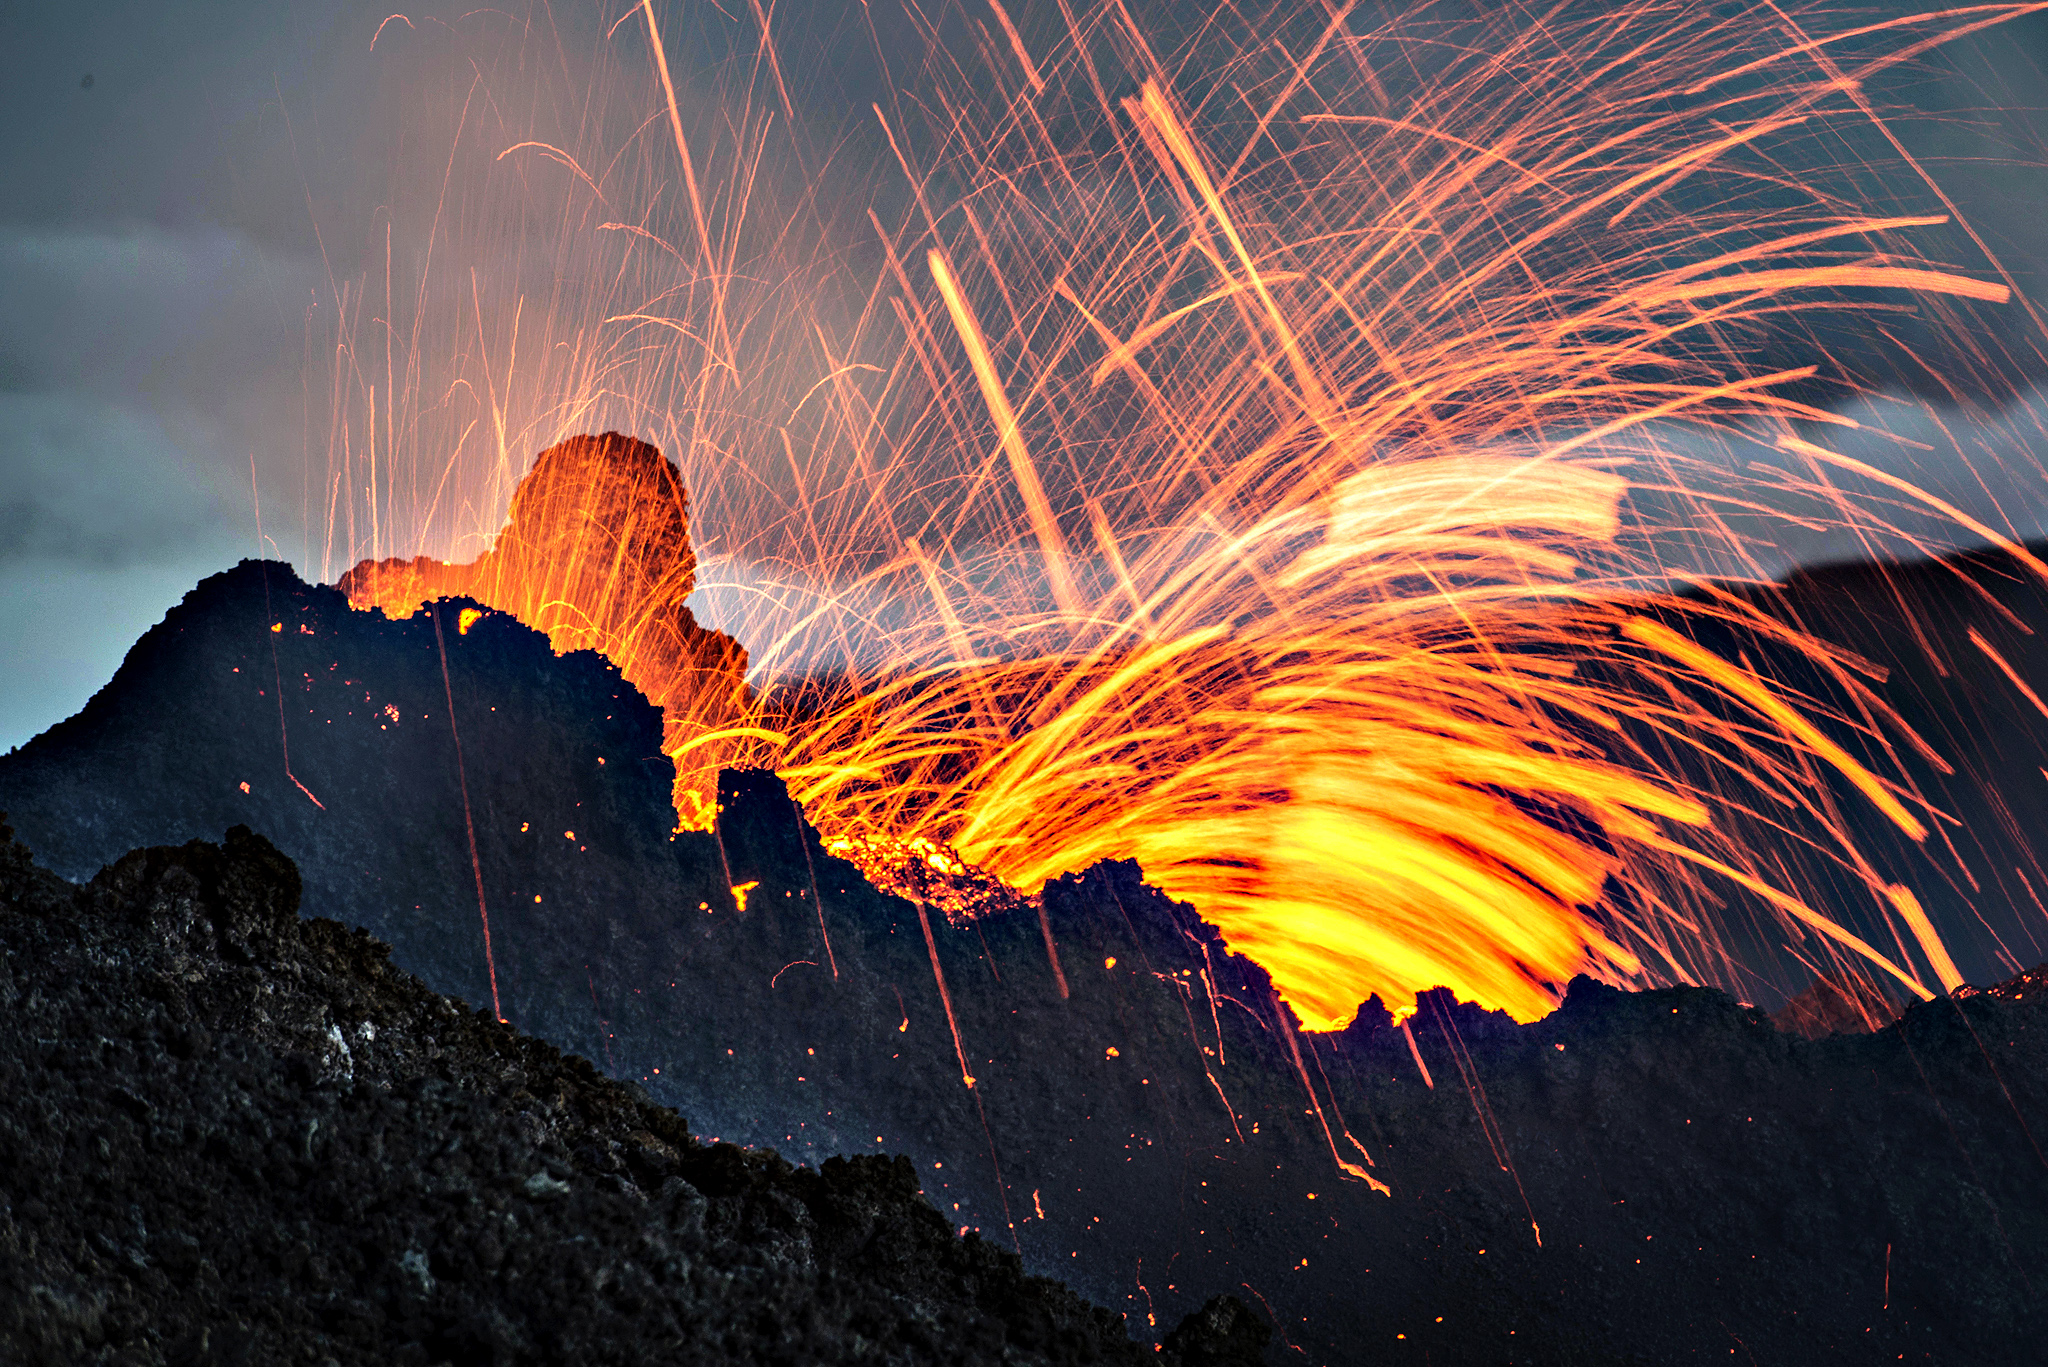 Lava erupts from the Piton de la Fournaise volcano in the French Indian Ocean island of La Reunion. This is the second eruption in the past year at Piton de la Fournaise after 3-years of quiet.